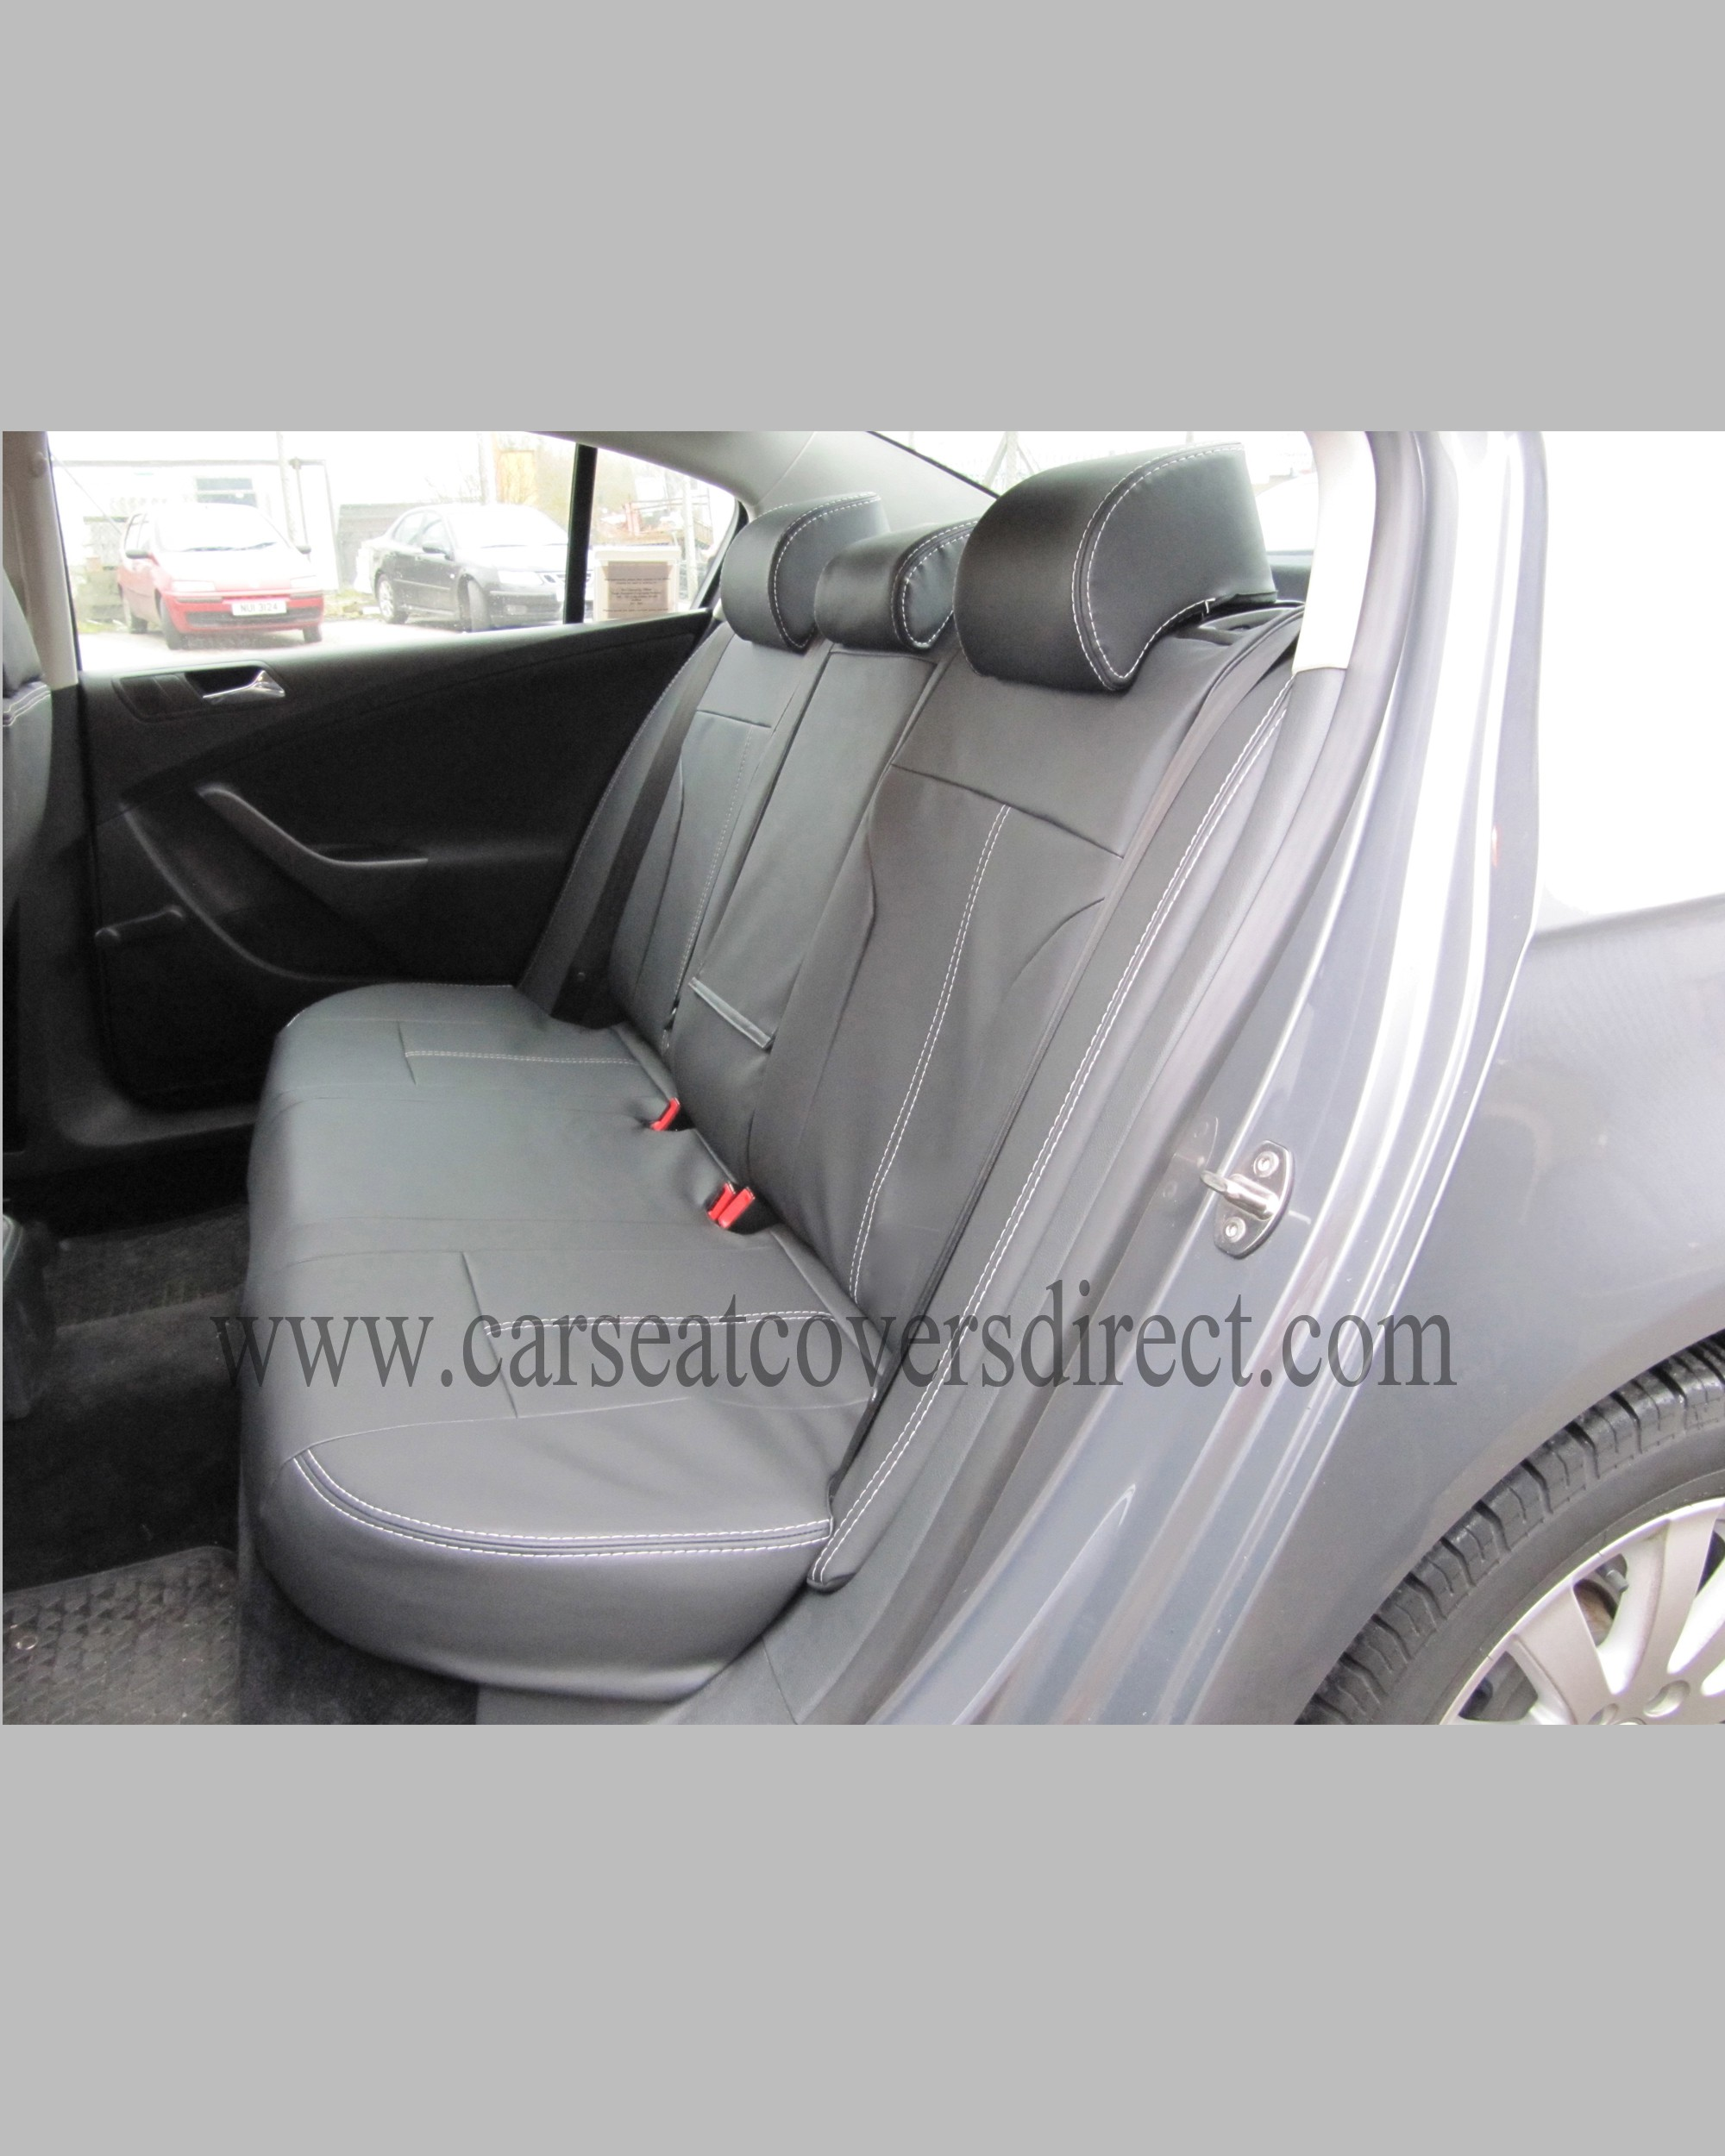 volkswagen vw passat b6 taxi pack seat covers car seat covers direct tailored to your choice. Black Bedroom Furniture Sets. Home Design Ideas